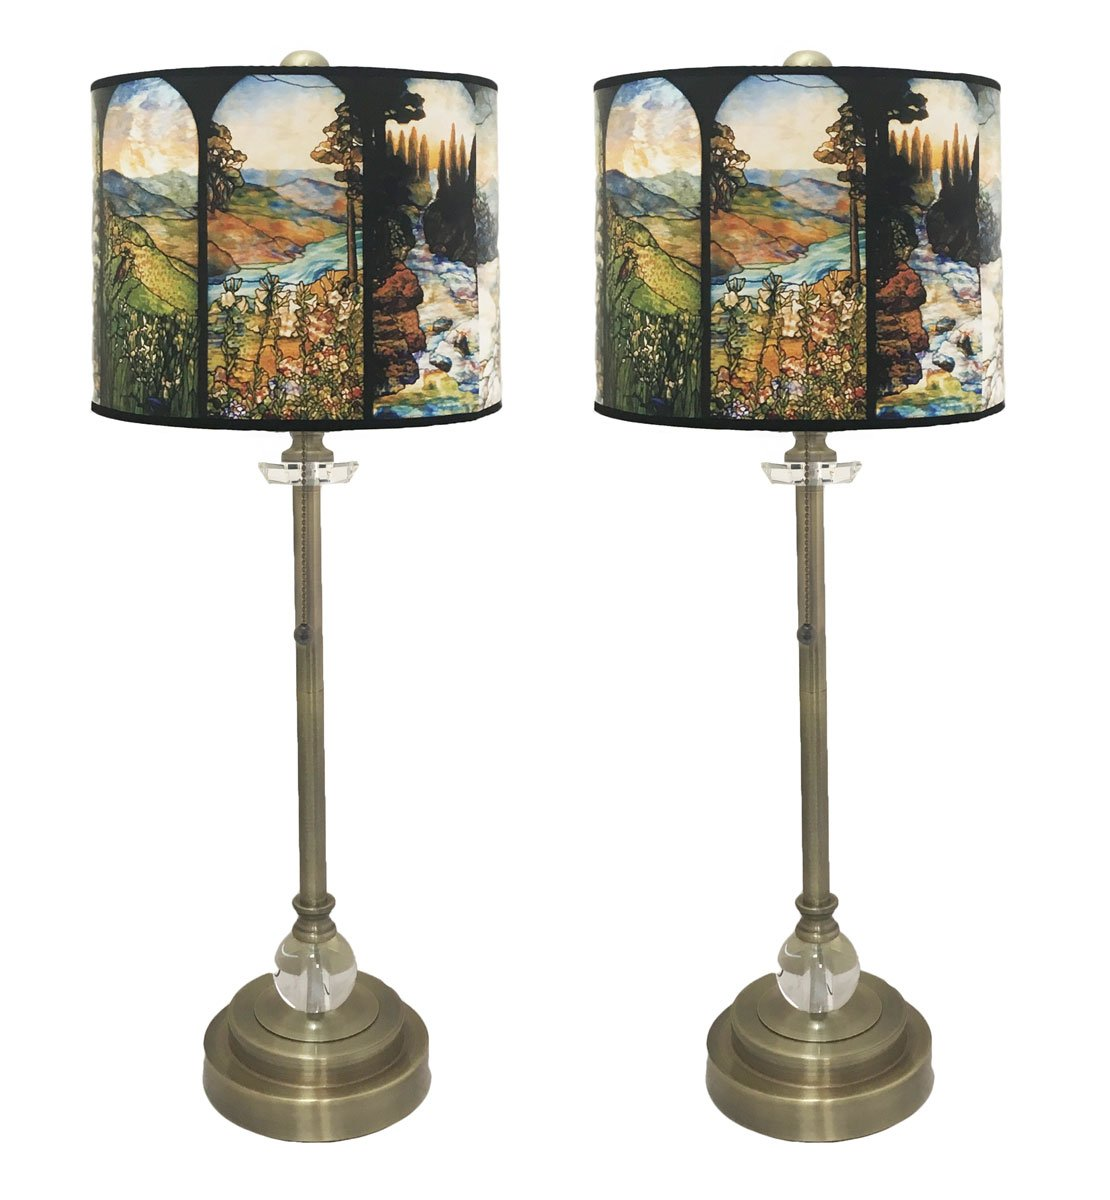 Royal Designs 28'' Crystal and Antique Brass Buffet Lamp with Four Seasons Stained Glass Design Hard Back Lamp Shade, Set of 2